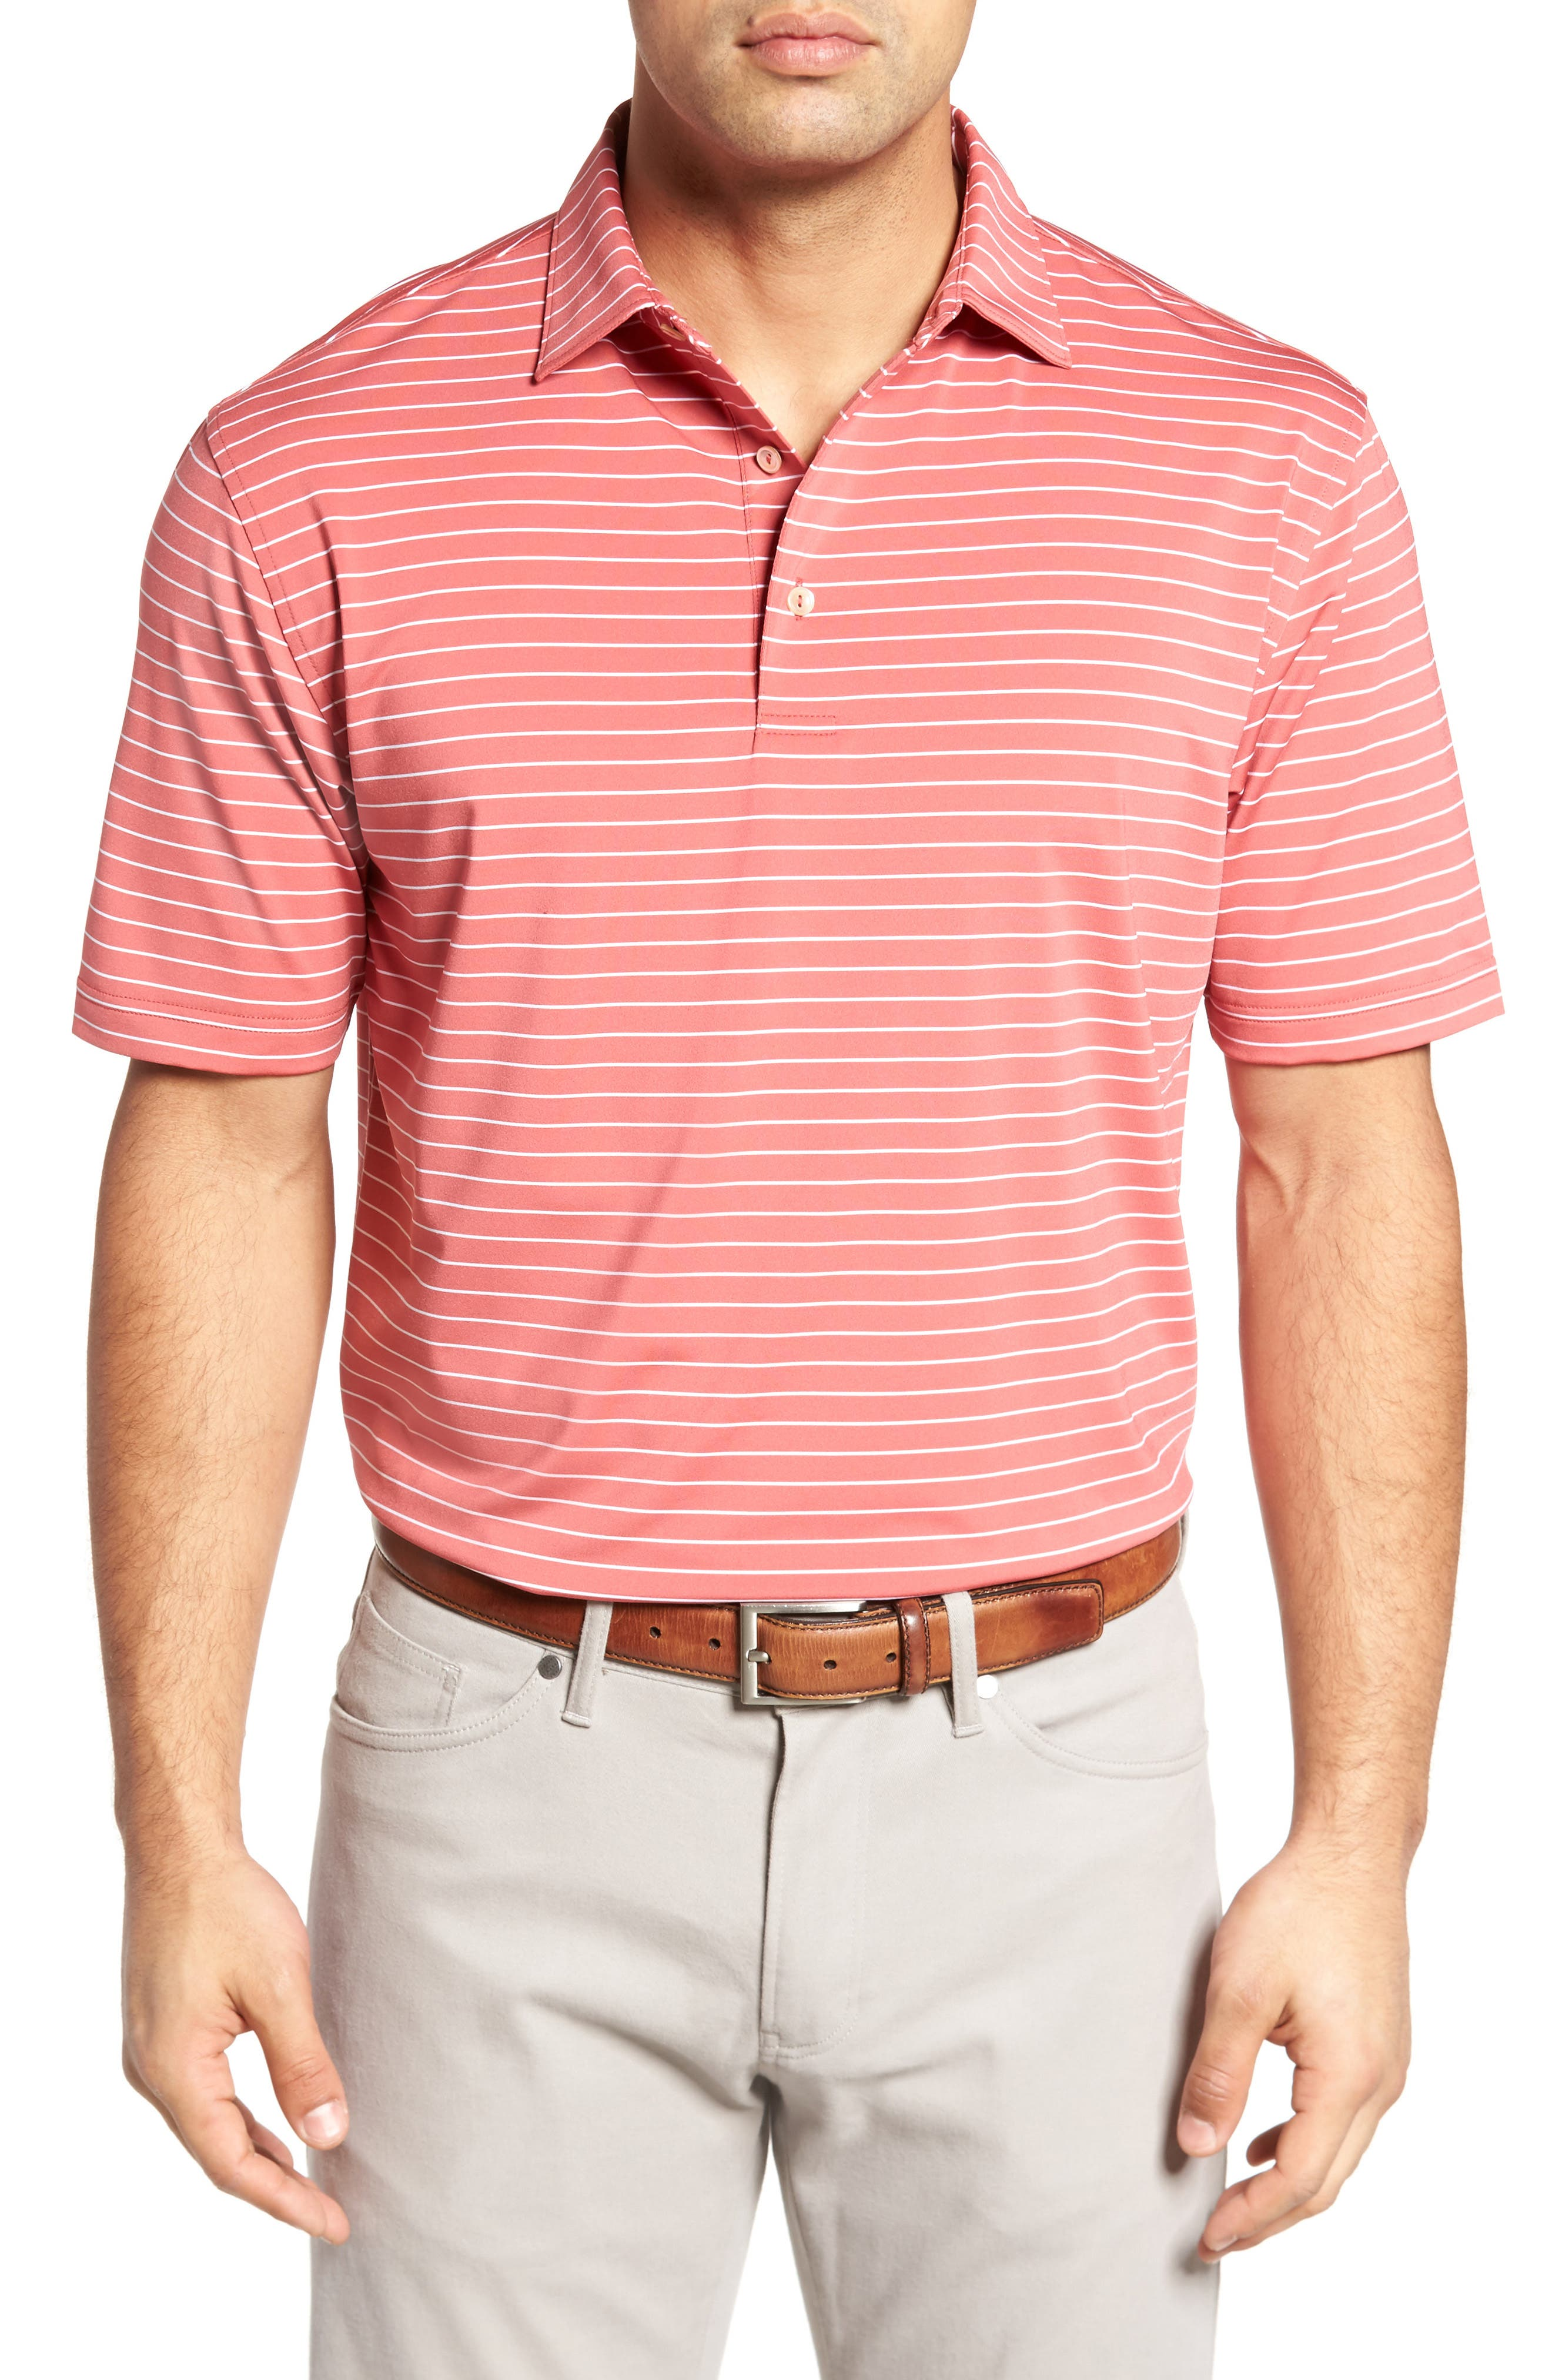 Halifax Pinstripe Stretch Jersey Polo,                             Main thumbnail 1, color,                             Cape Red